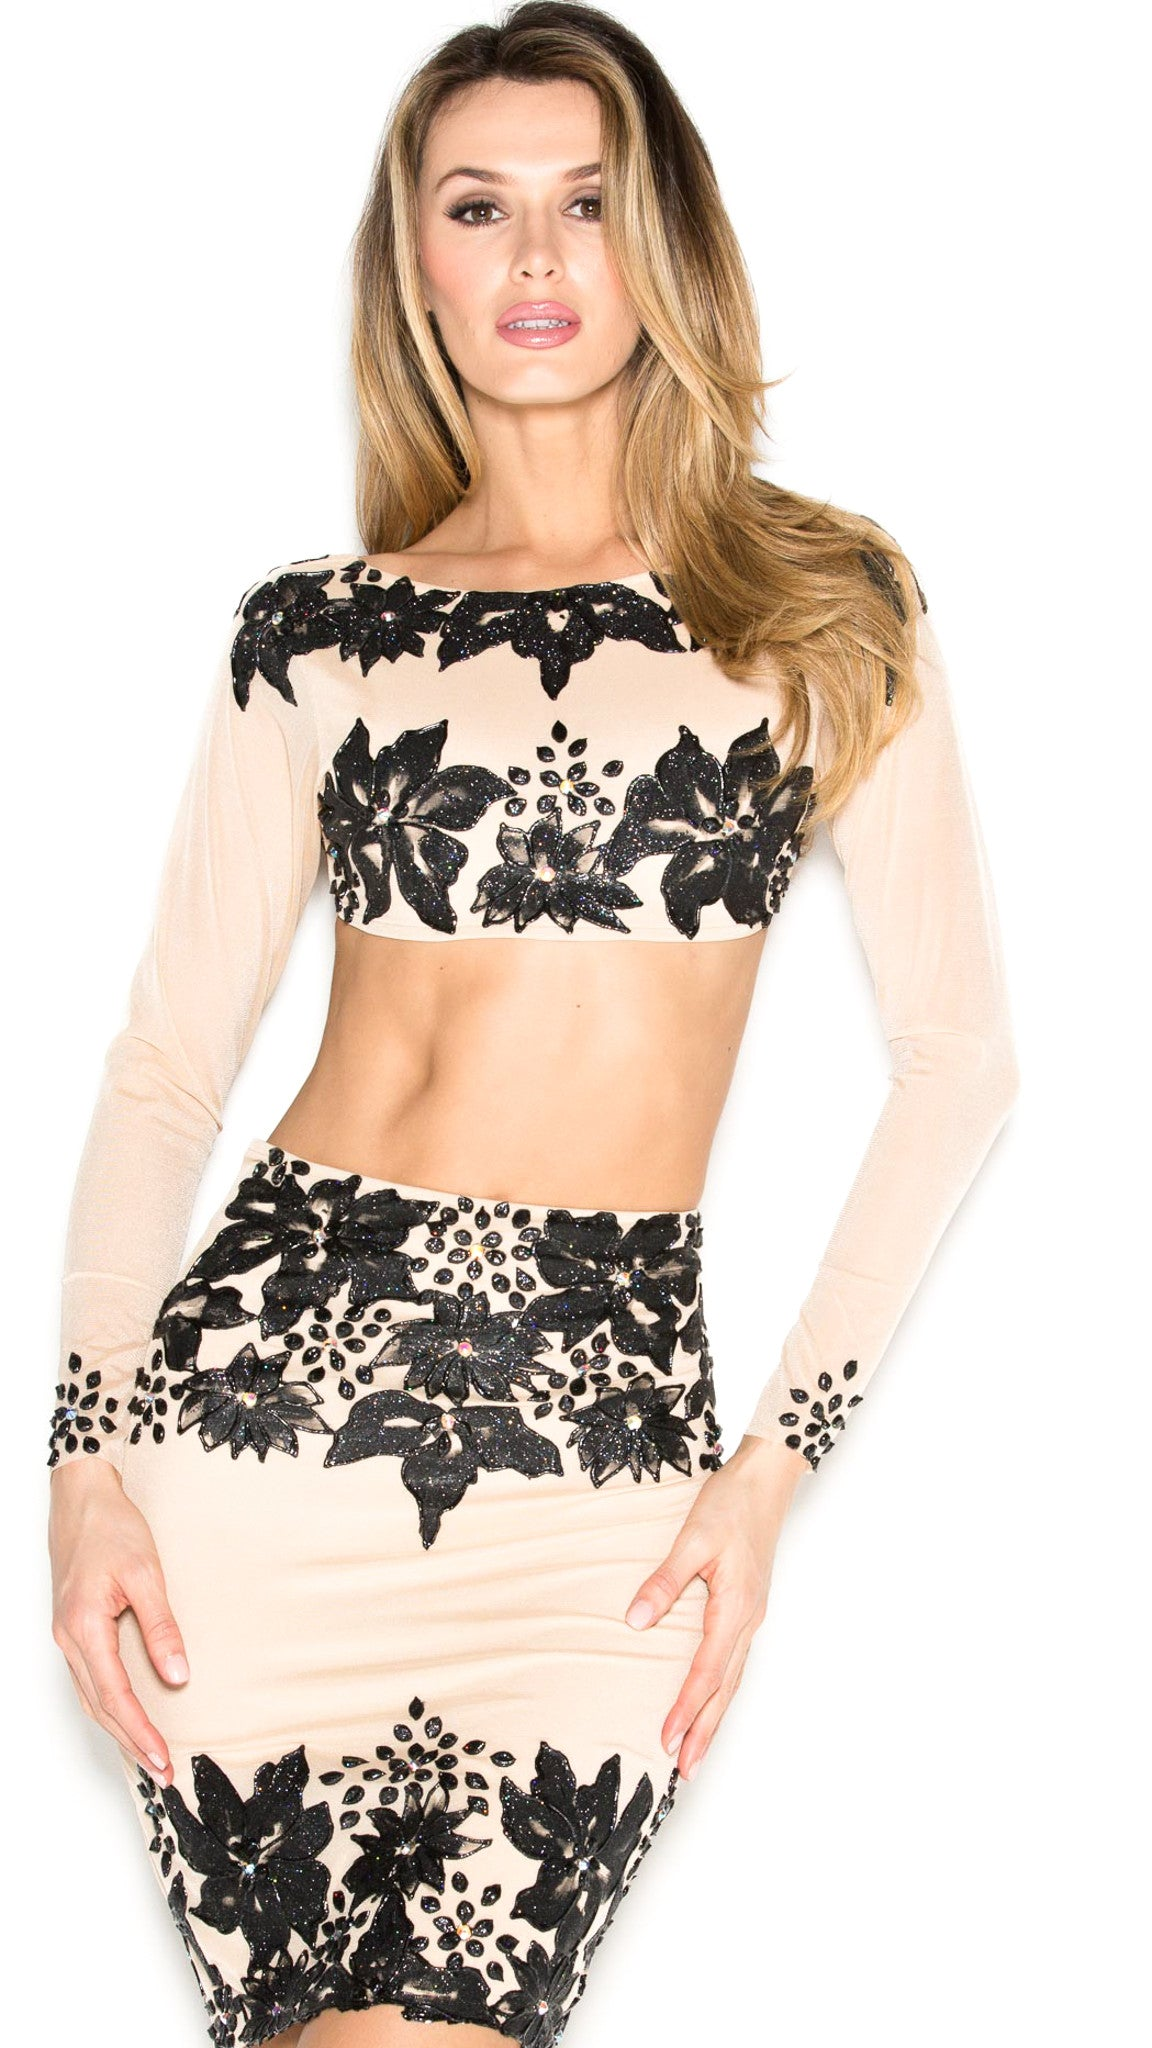 CLOVER TWO PIECE SET IN NUDE WITH BLACK